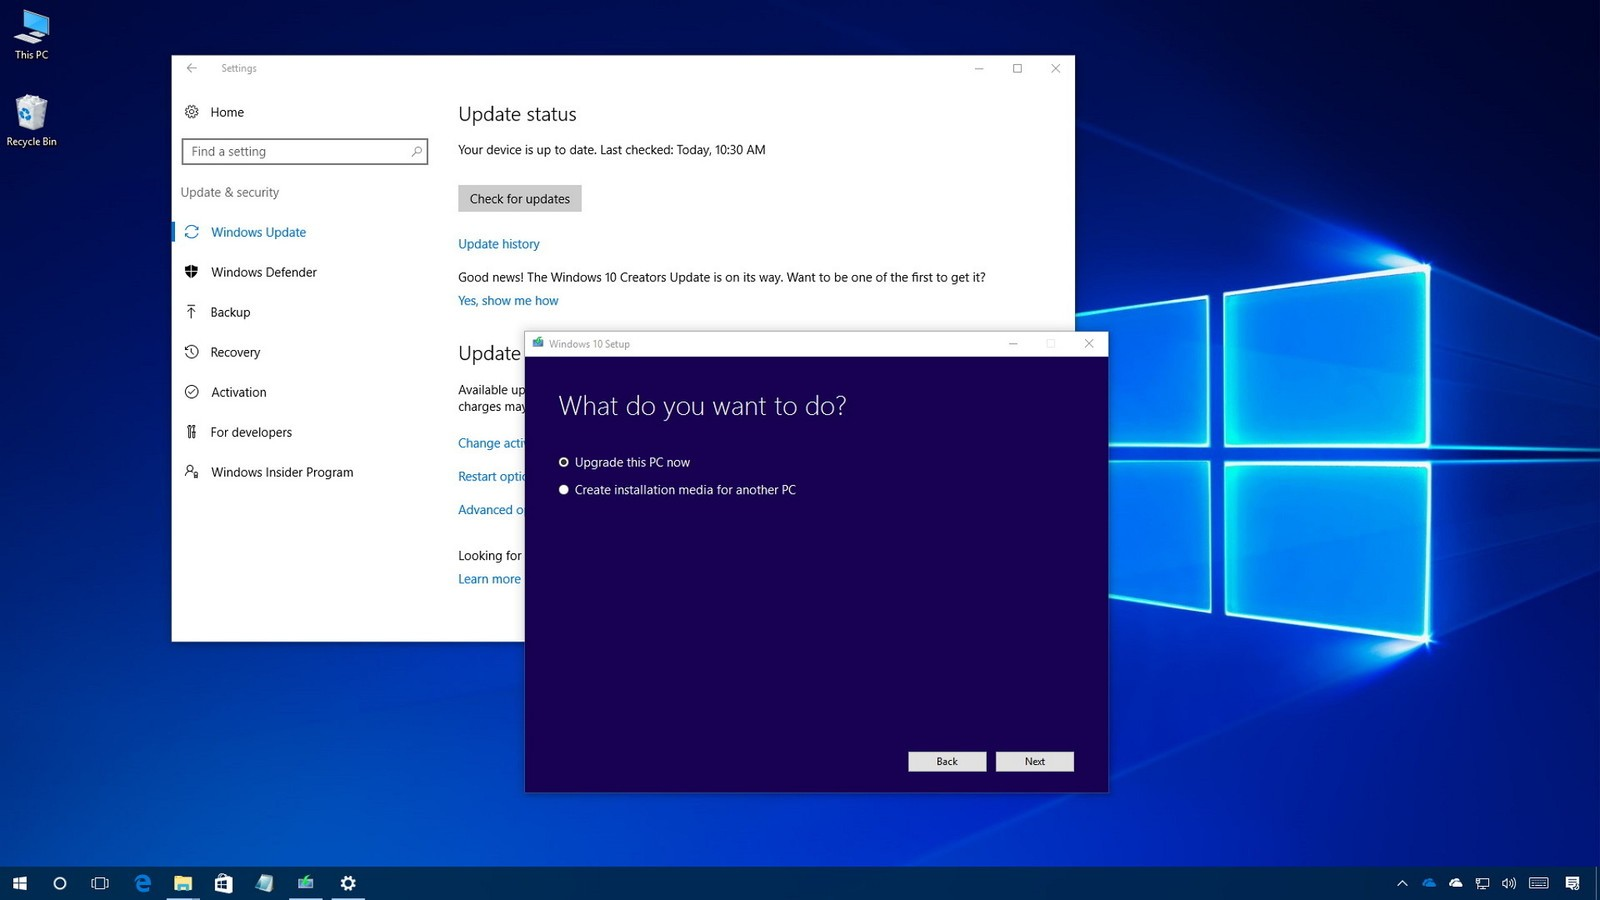 Windows 10 for Windows 10 update